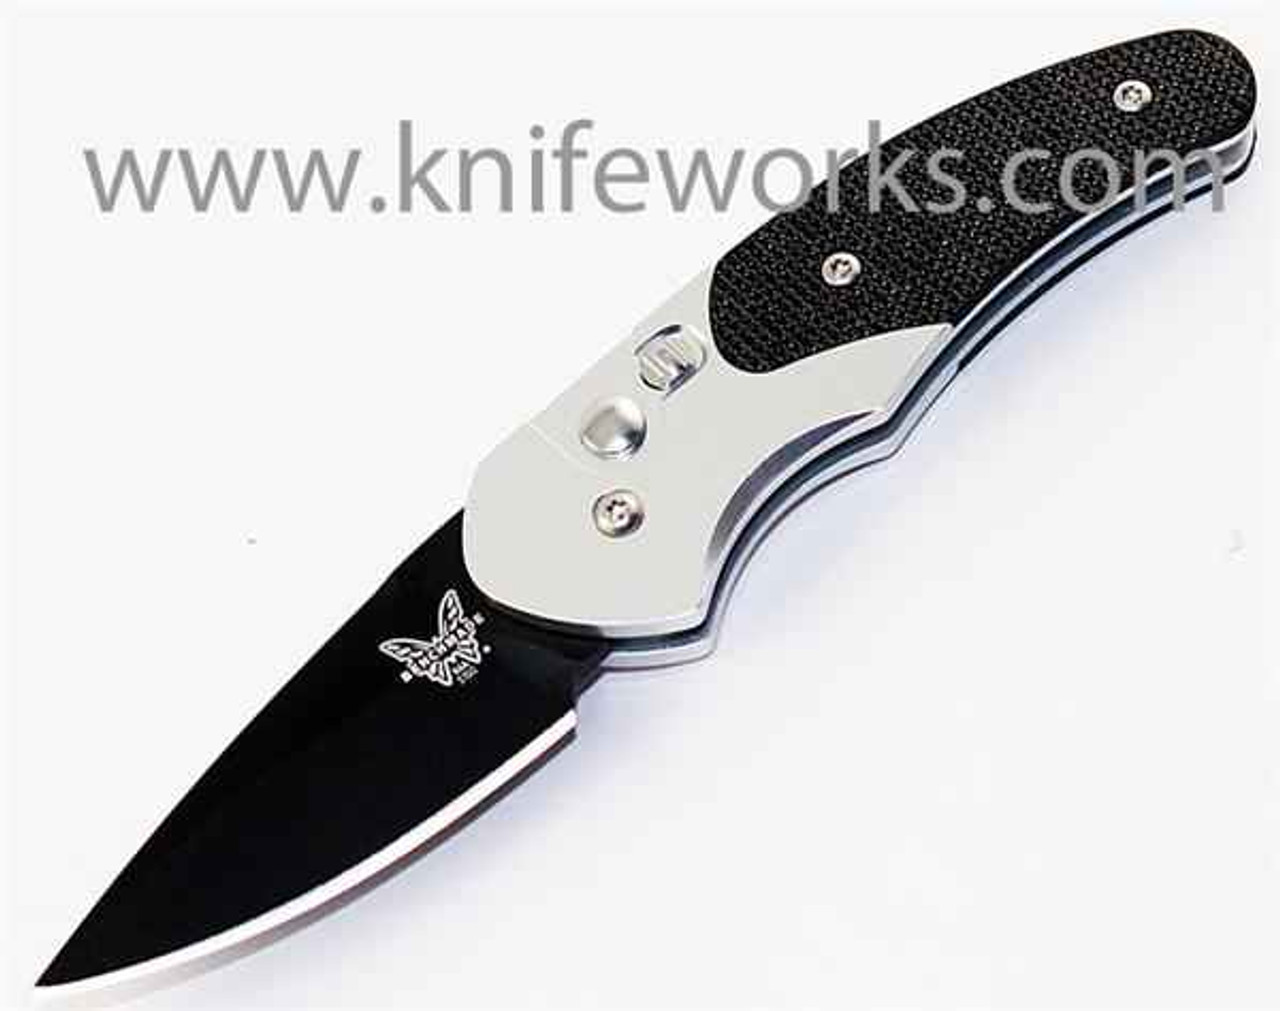 Benchmade Impel Auto 3150BK, 1.98 in. S30V Stainless Blade, Aluminum and G10 Handle, Black Plain Edge